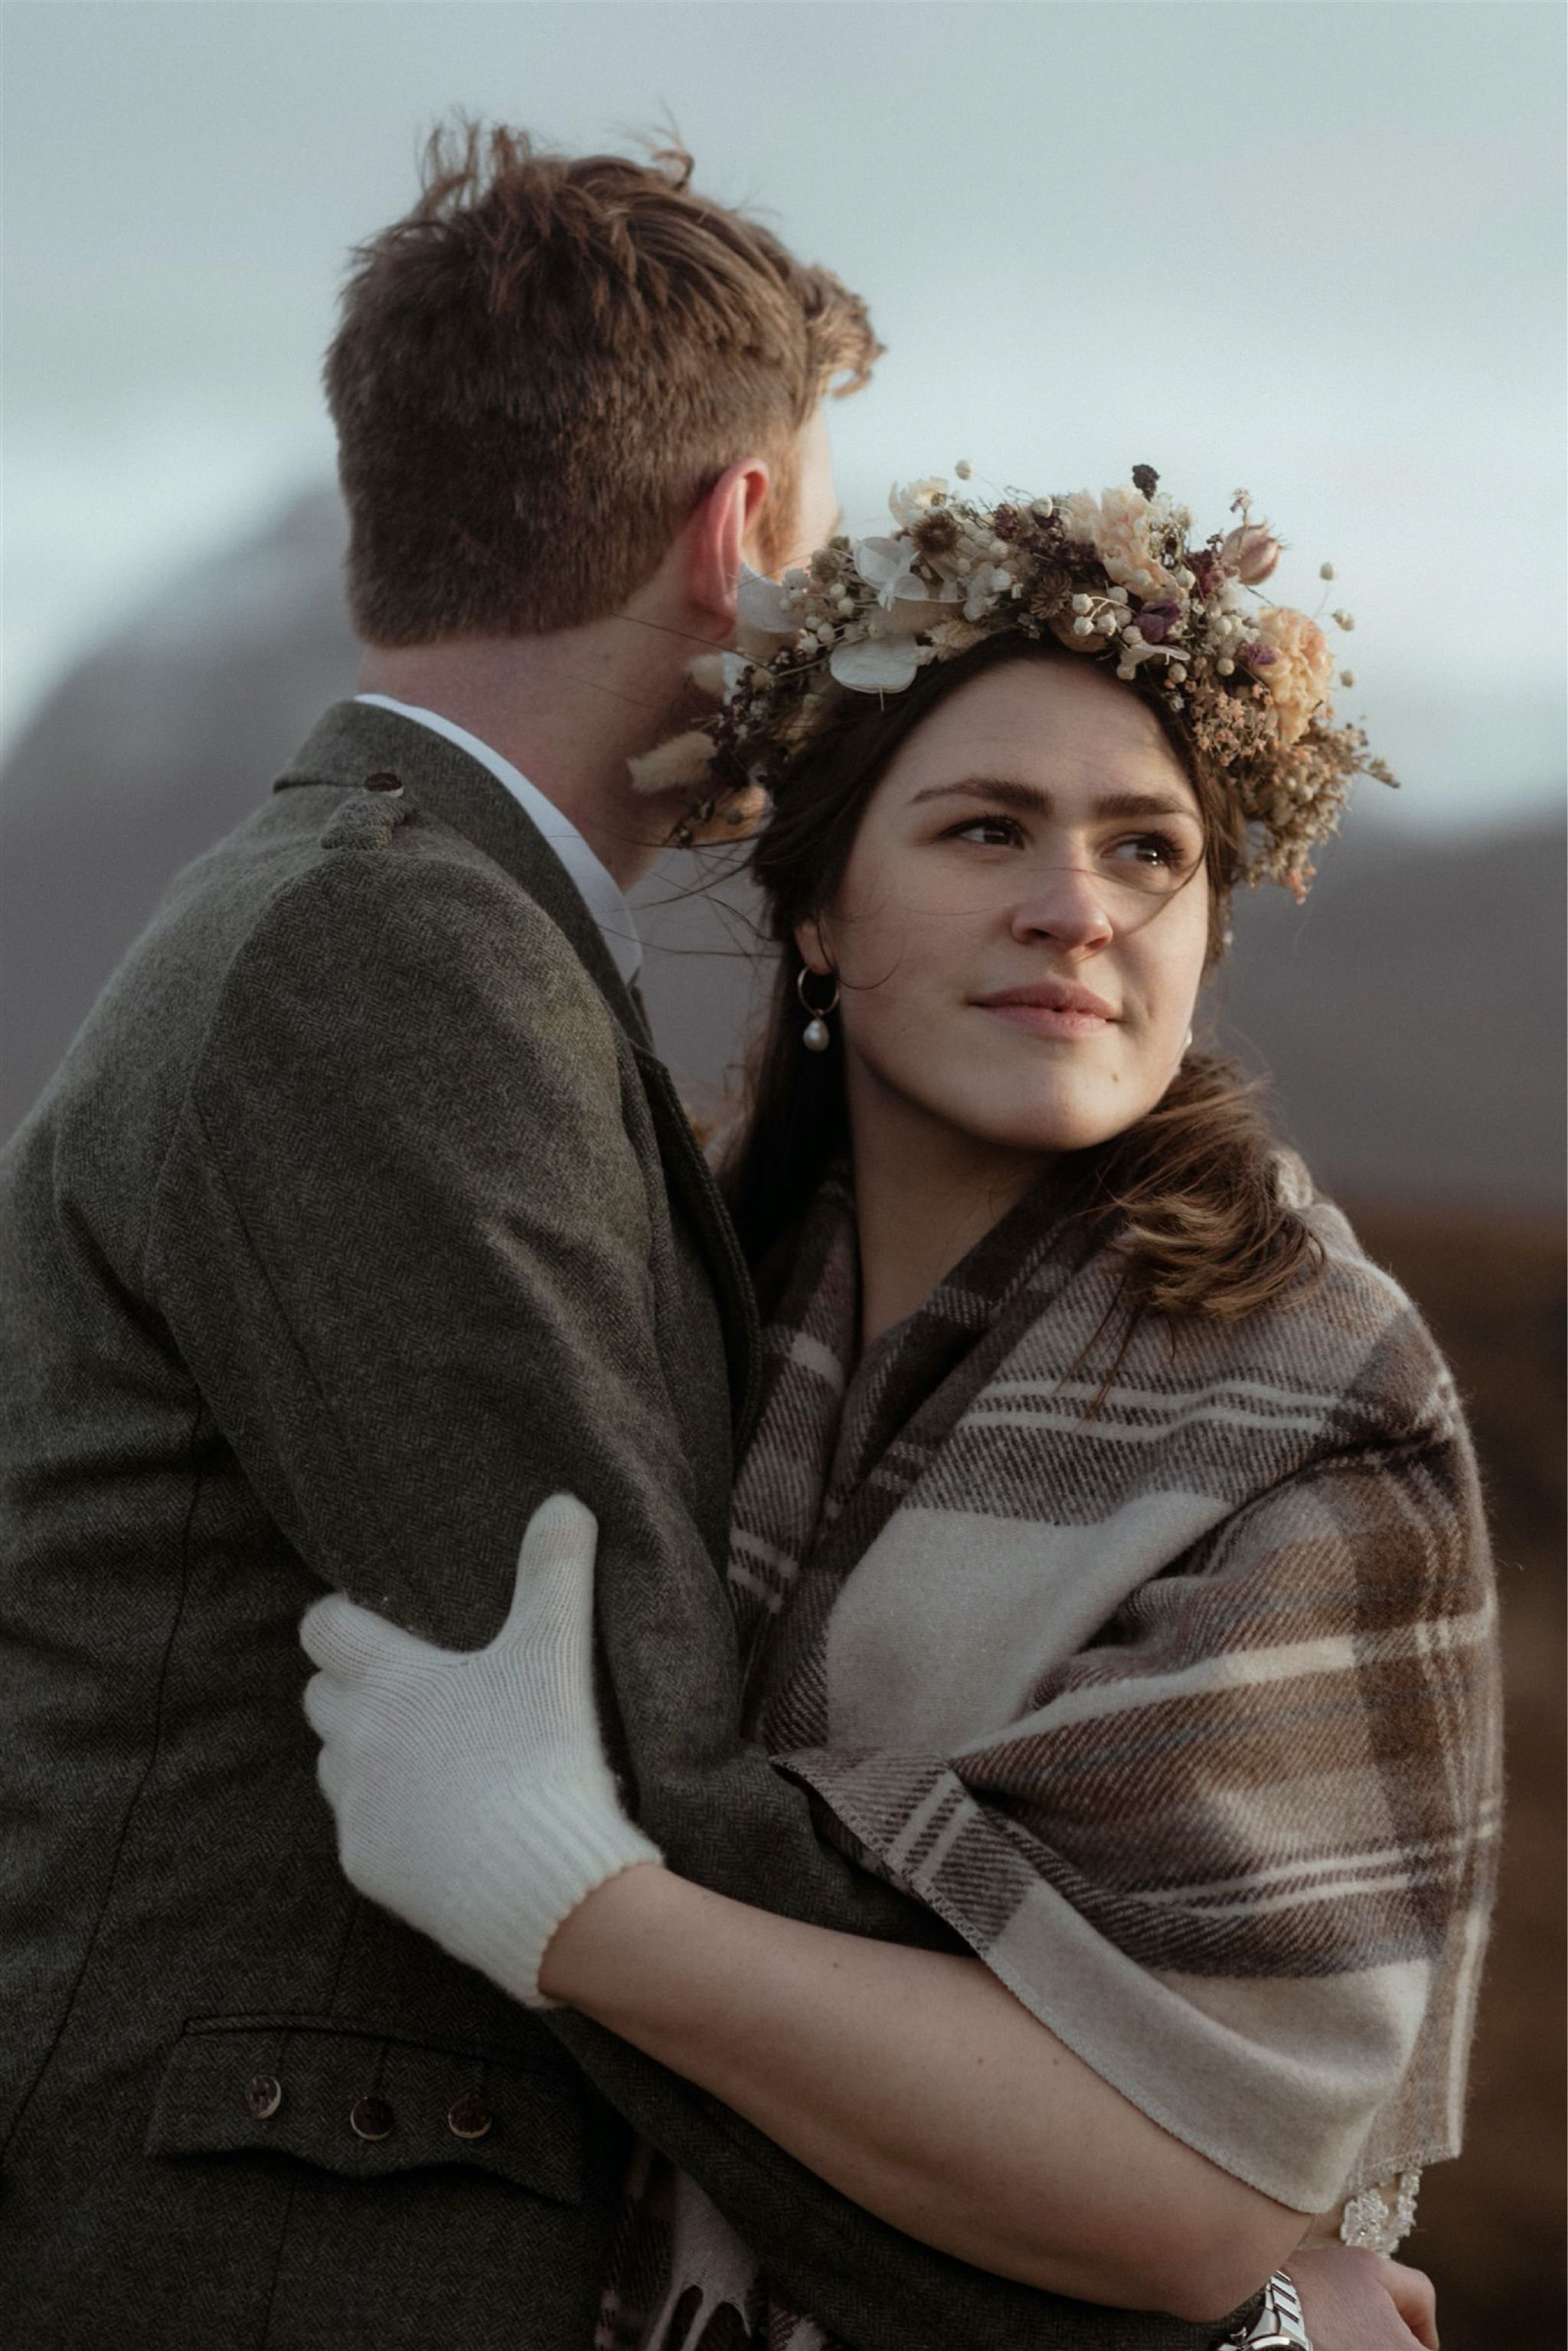 Bride and groom embrace in the mountains after their Scottish elopement wedding in Assynt